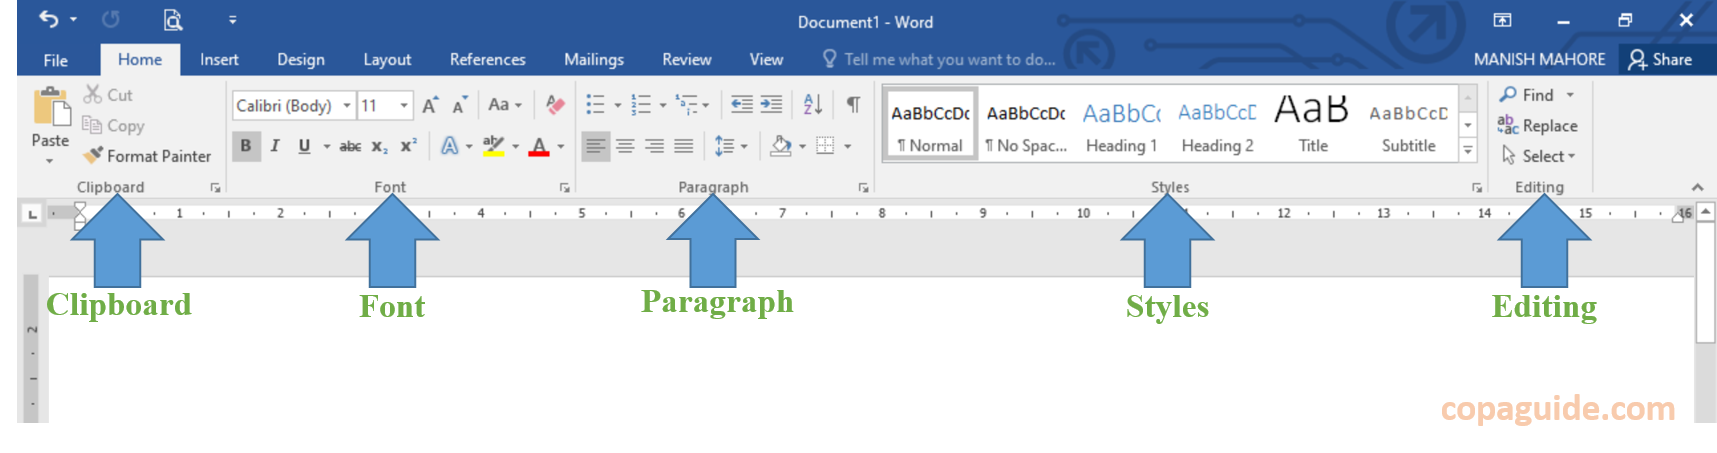 MS Word Home Tab Commands